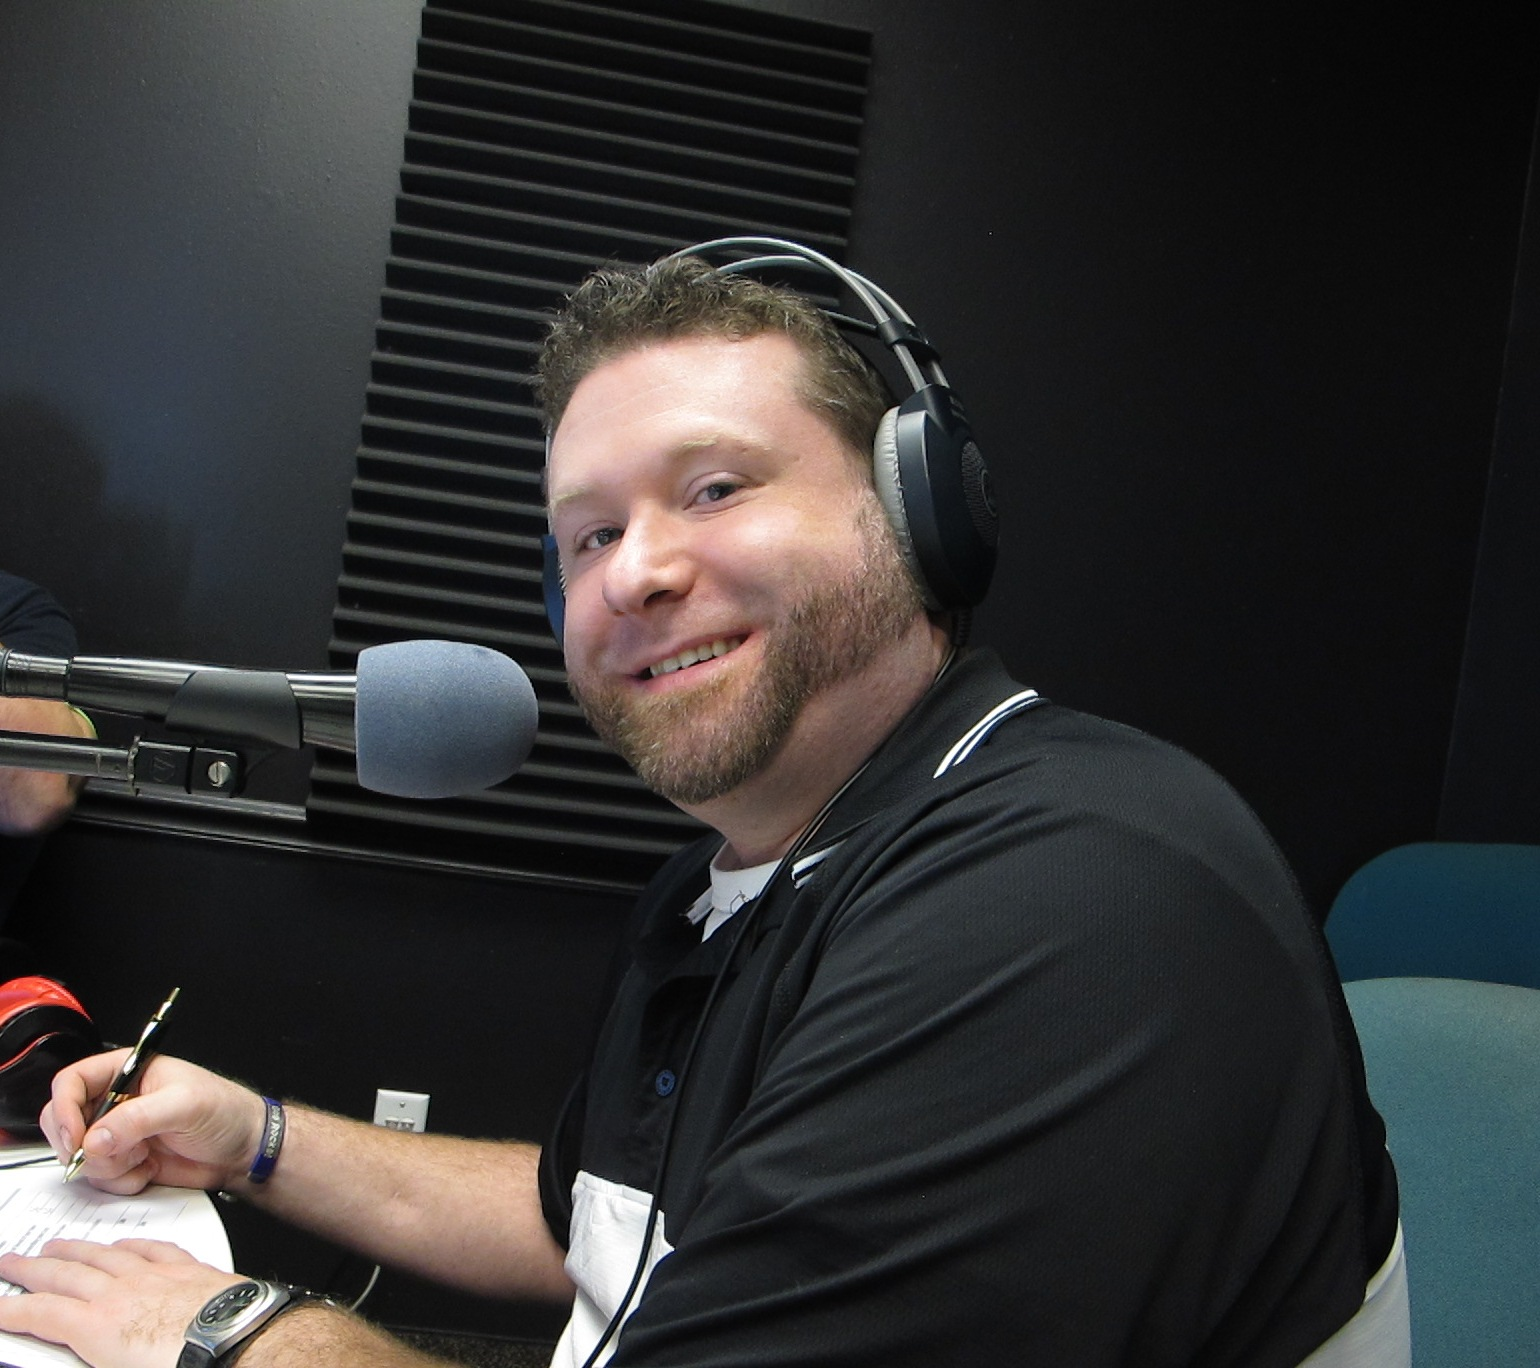 Dustin Goff in studio